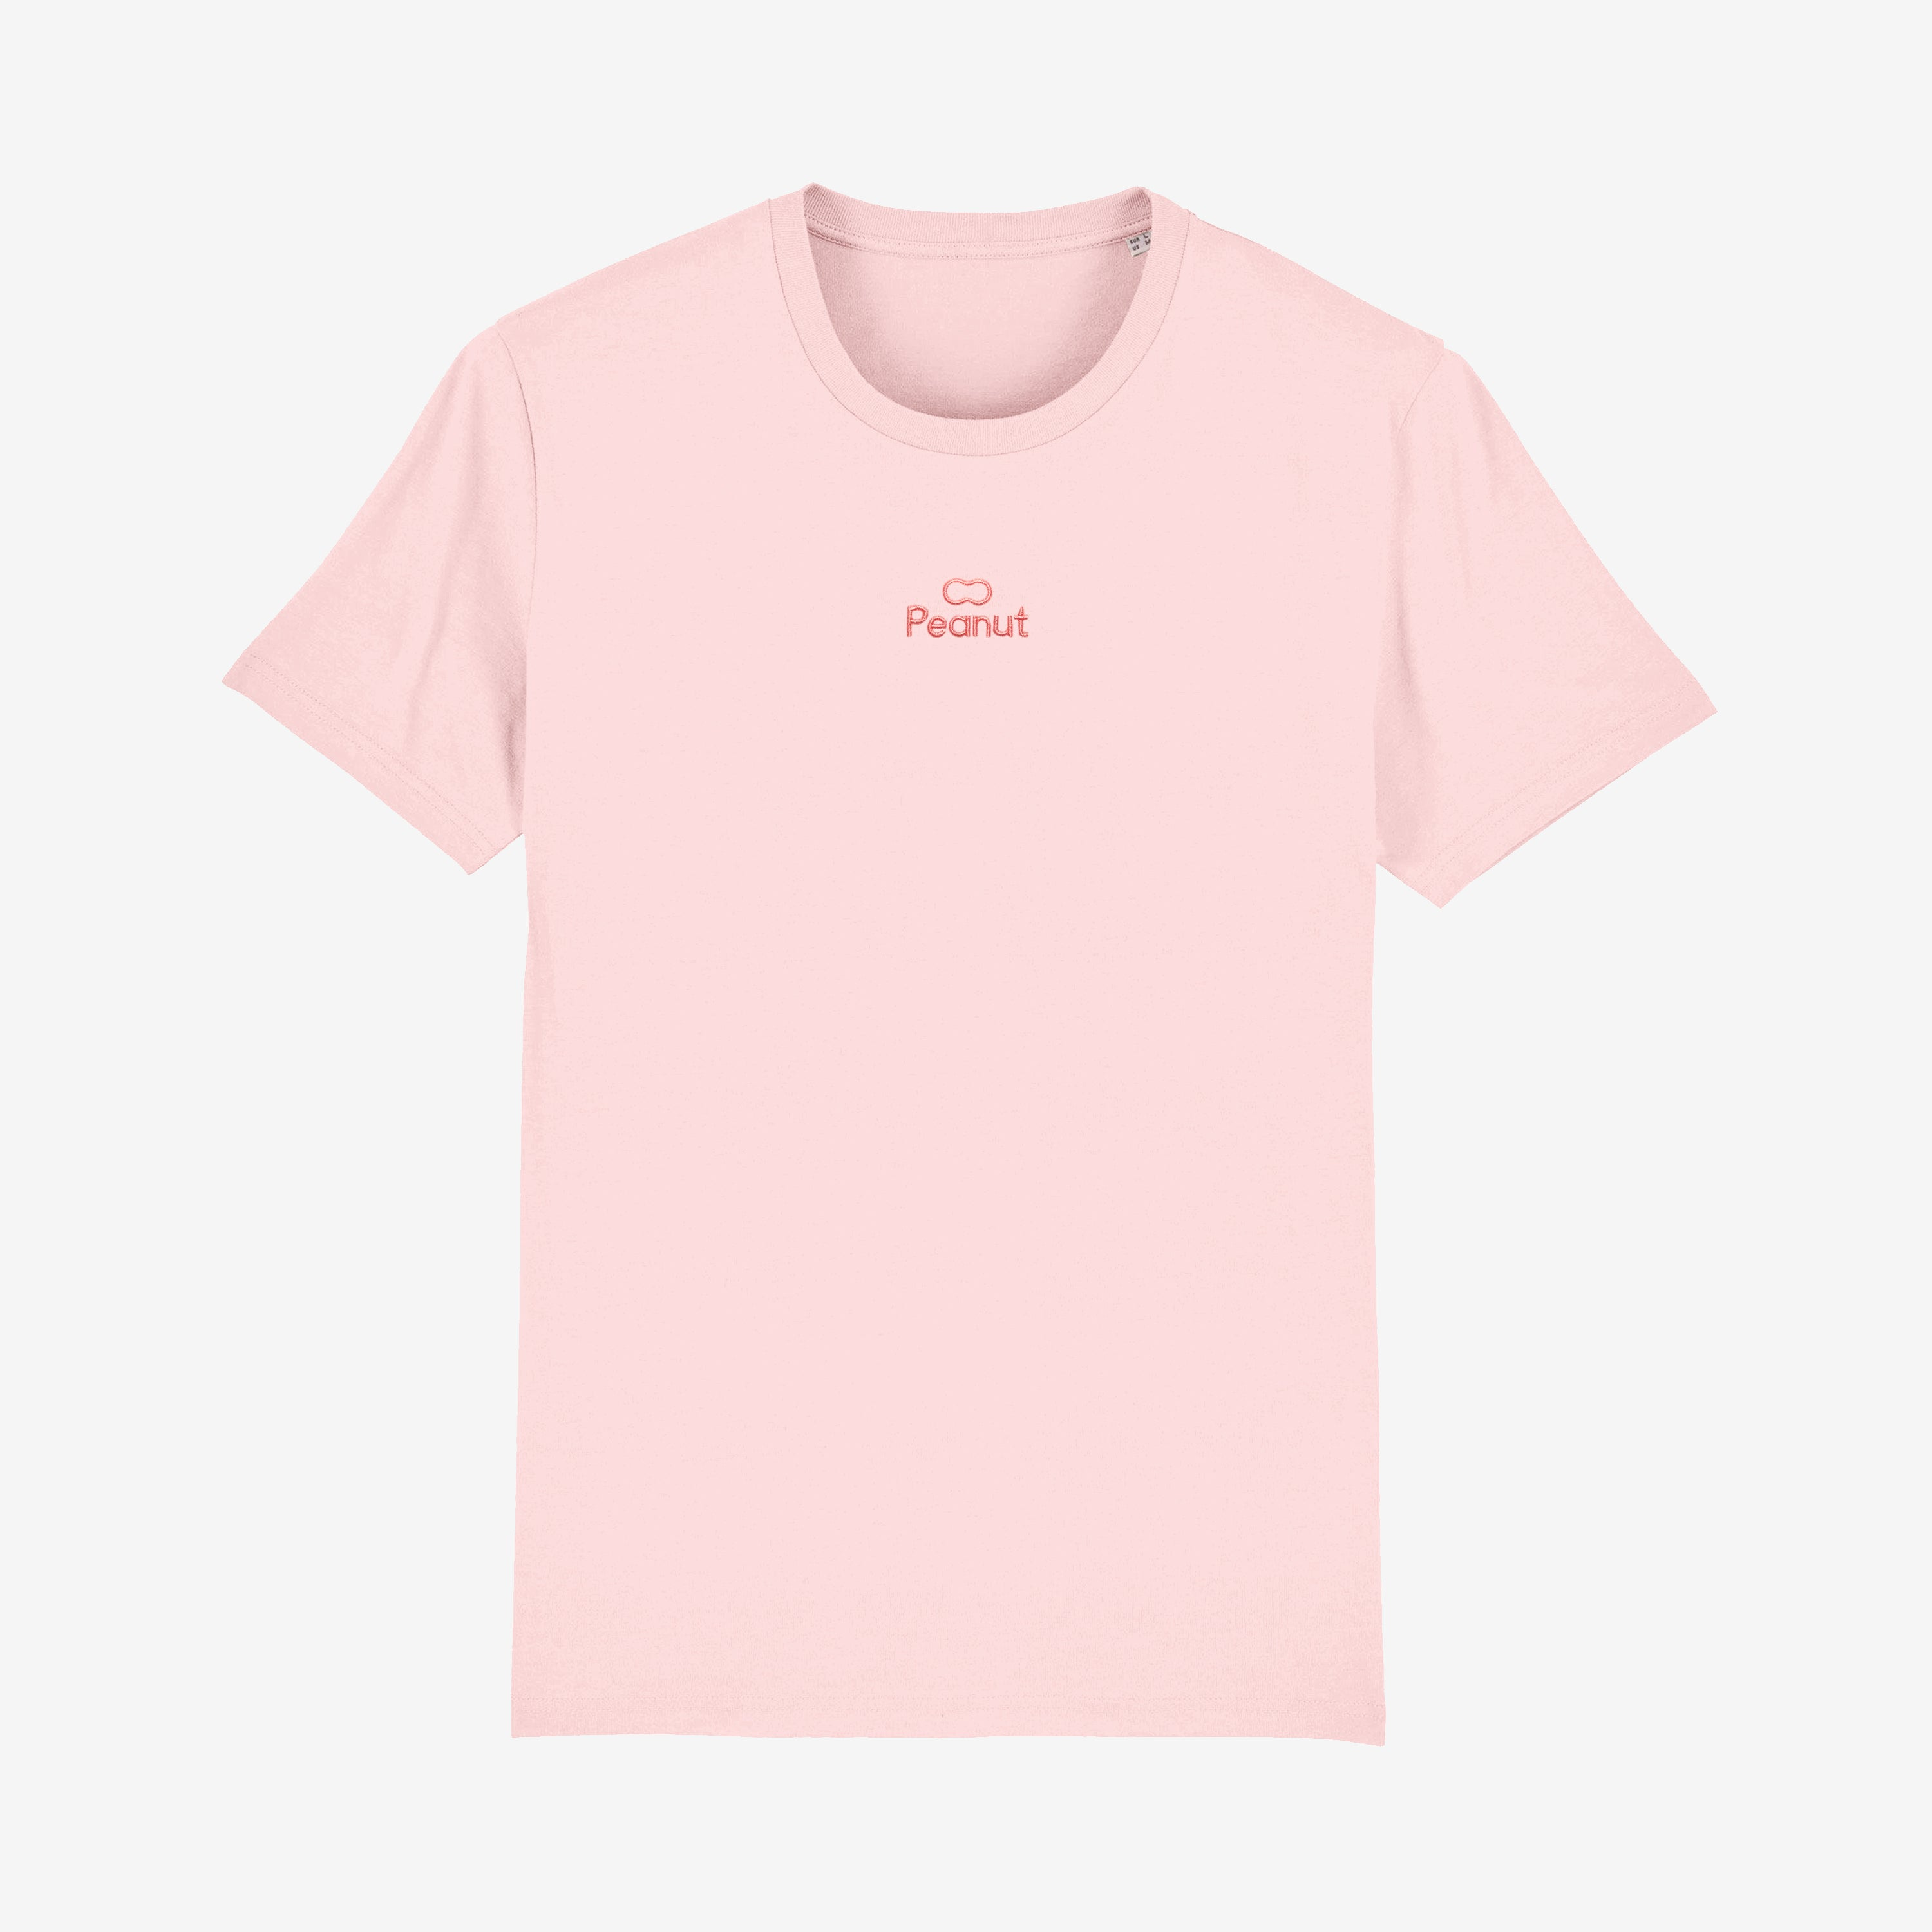 Embroidered Tee Pink